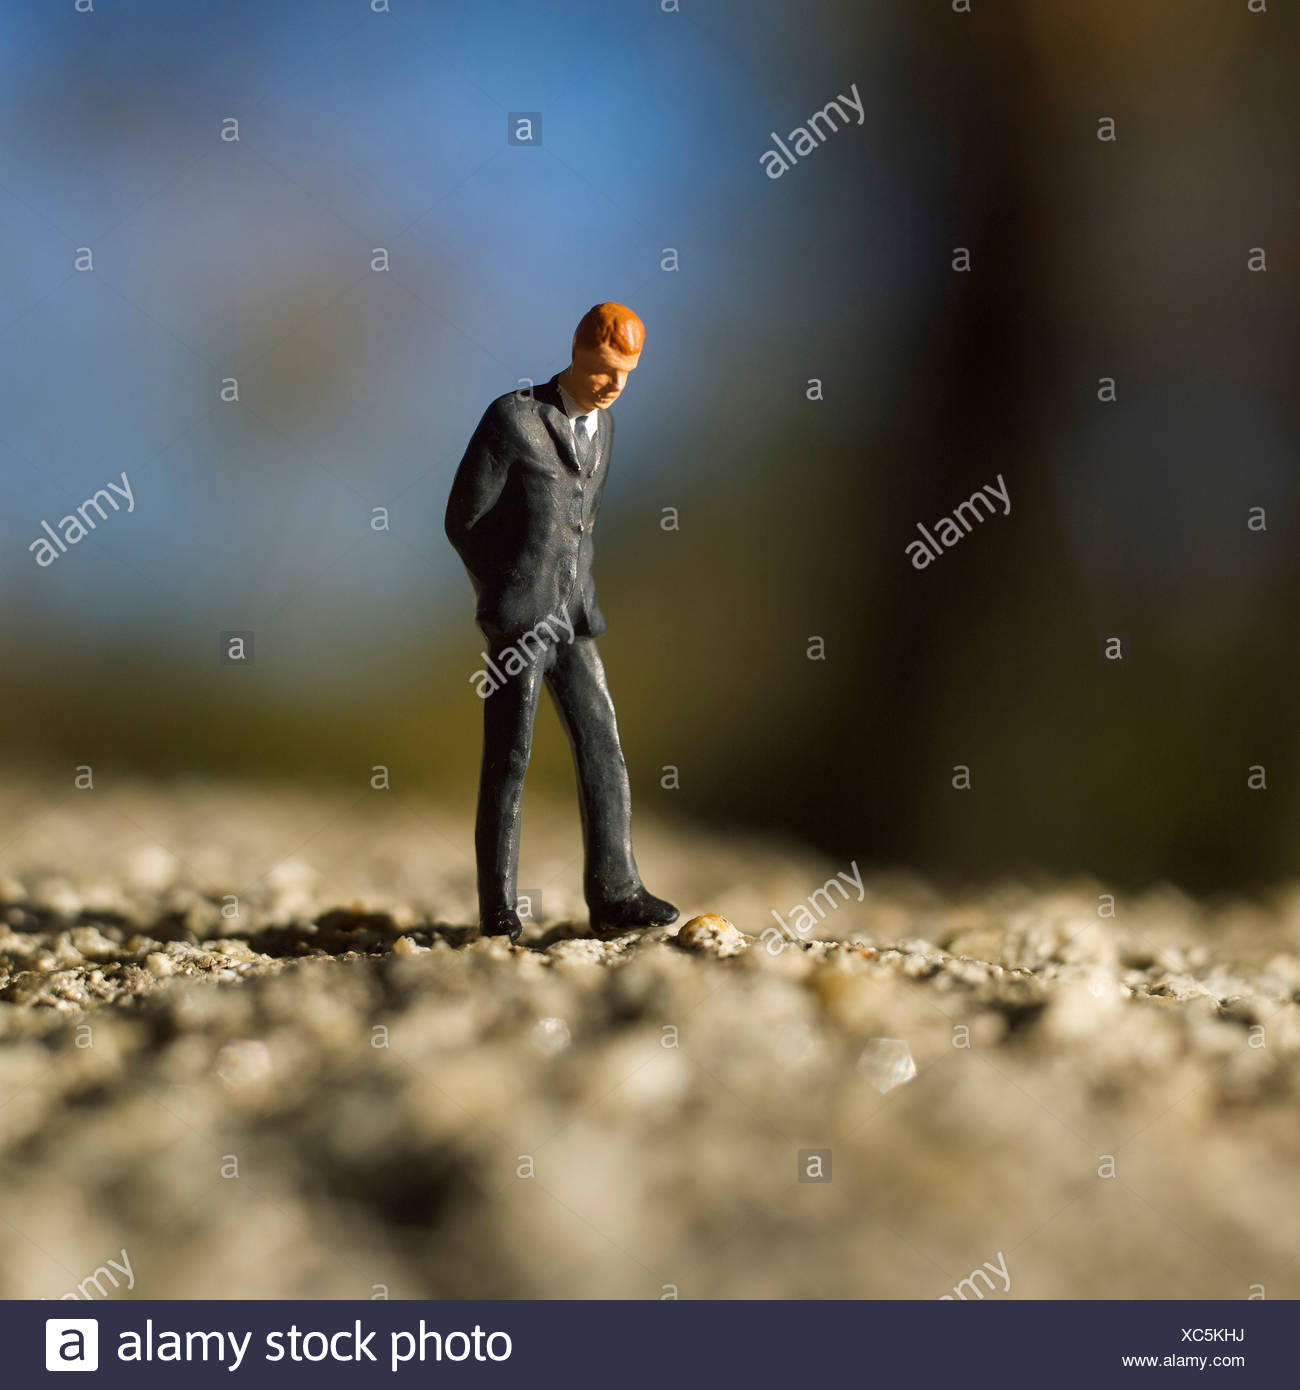 Solitary male figure alone walking - Stock Image